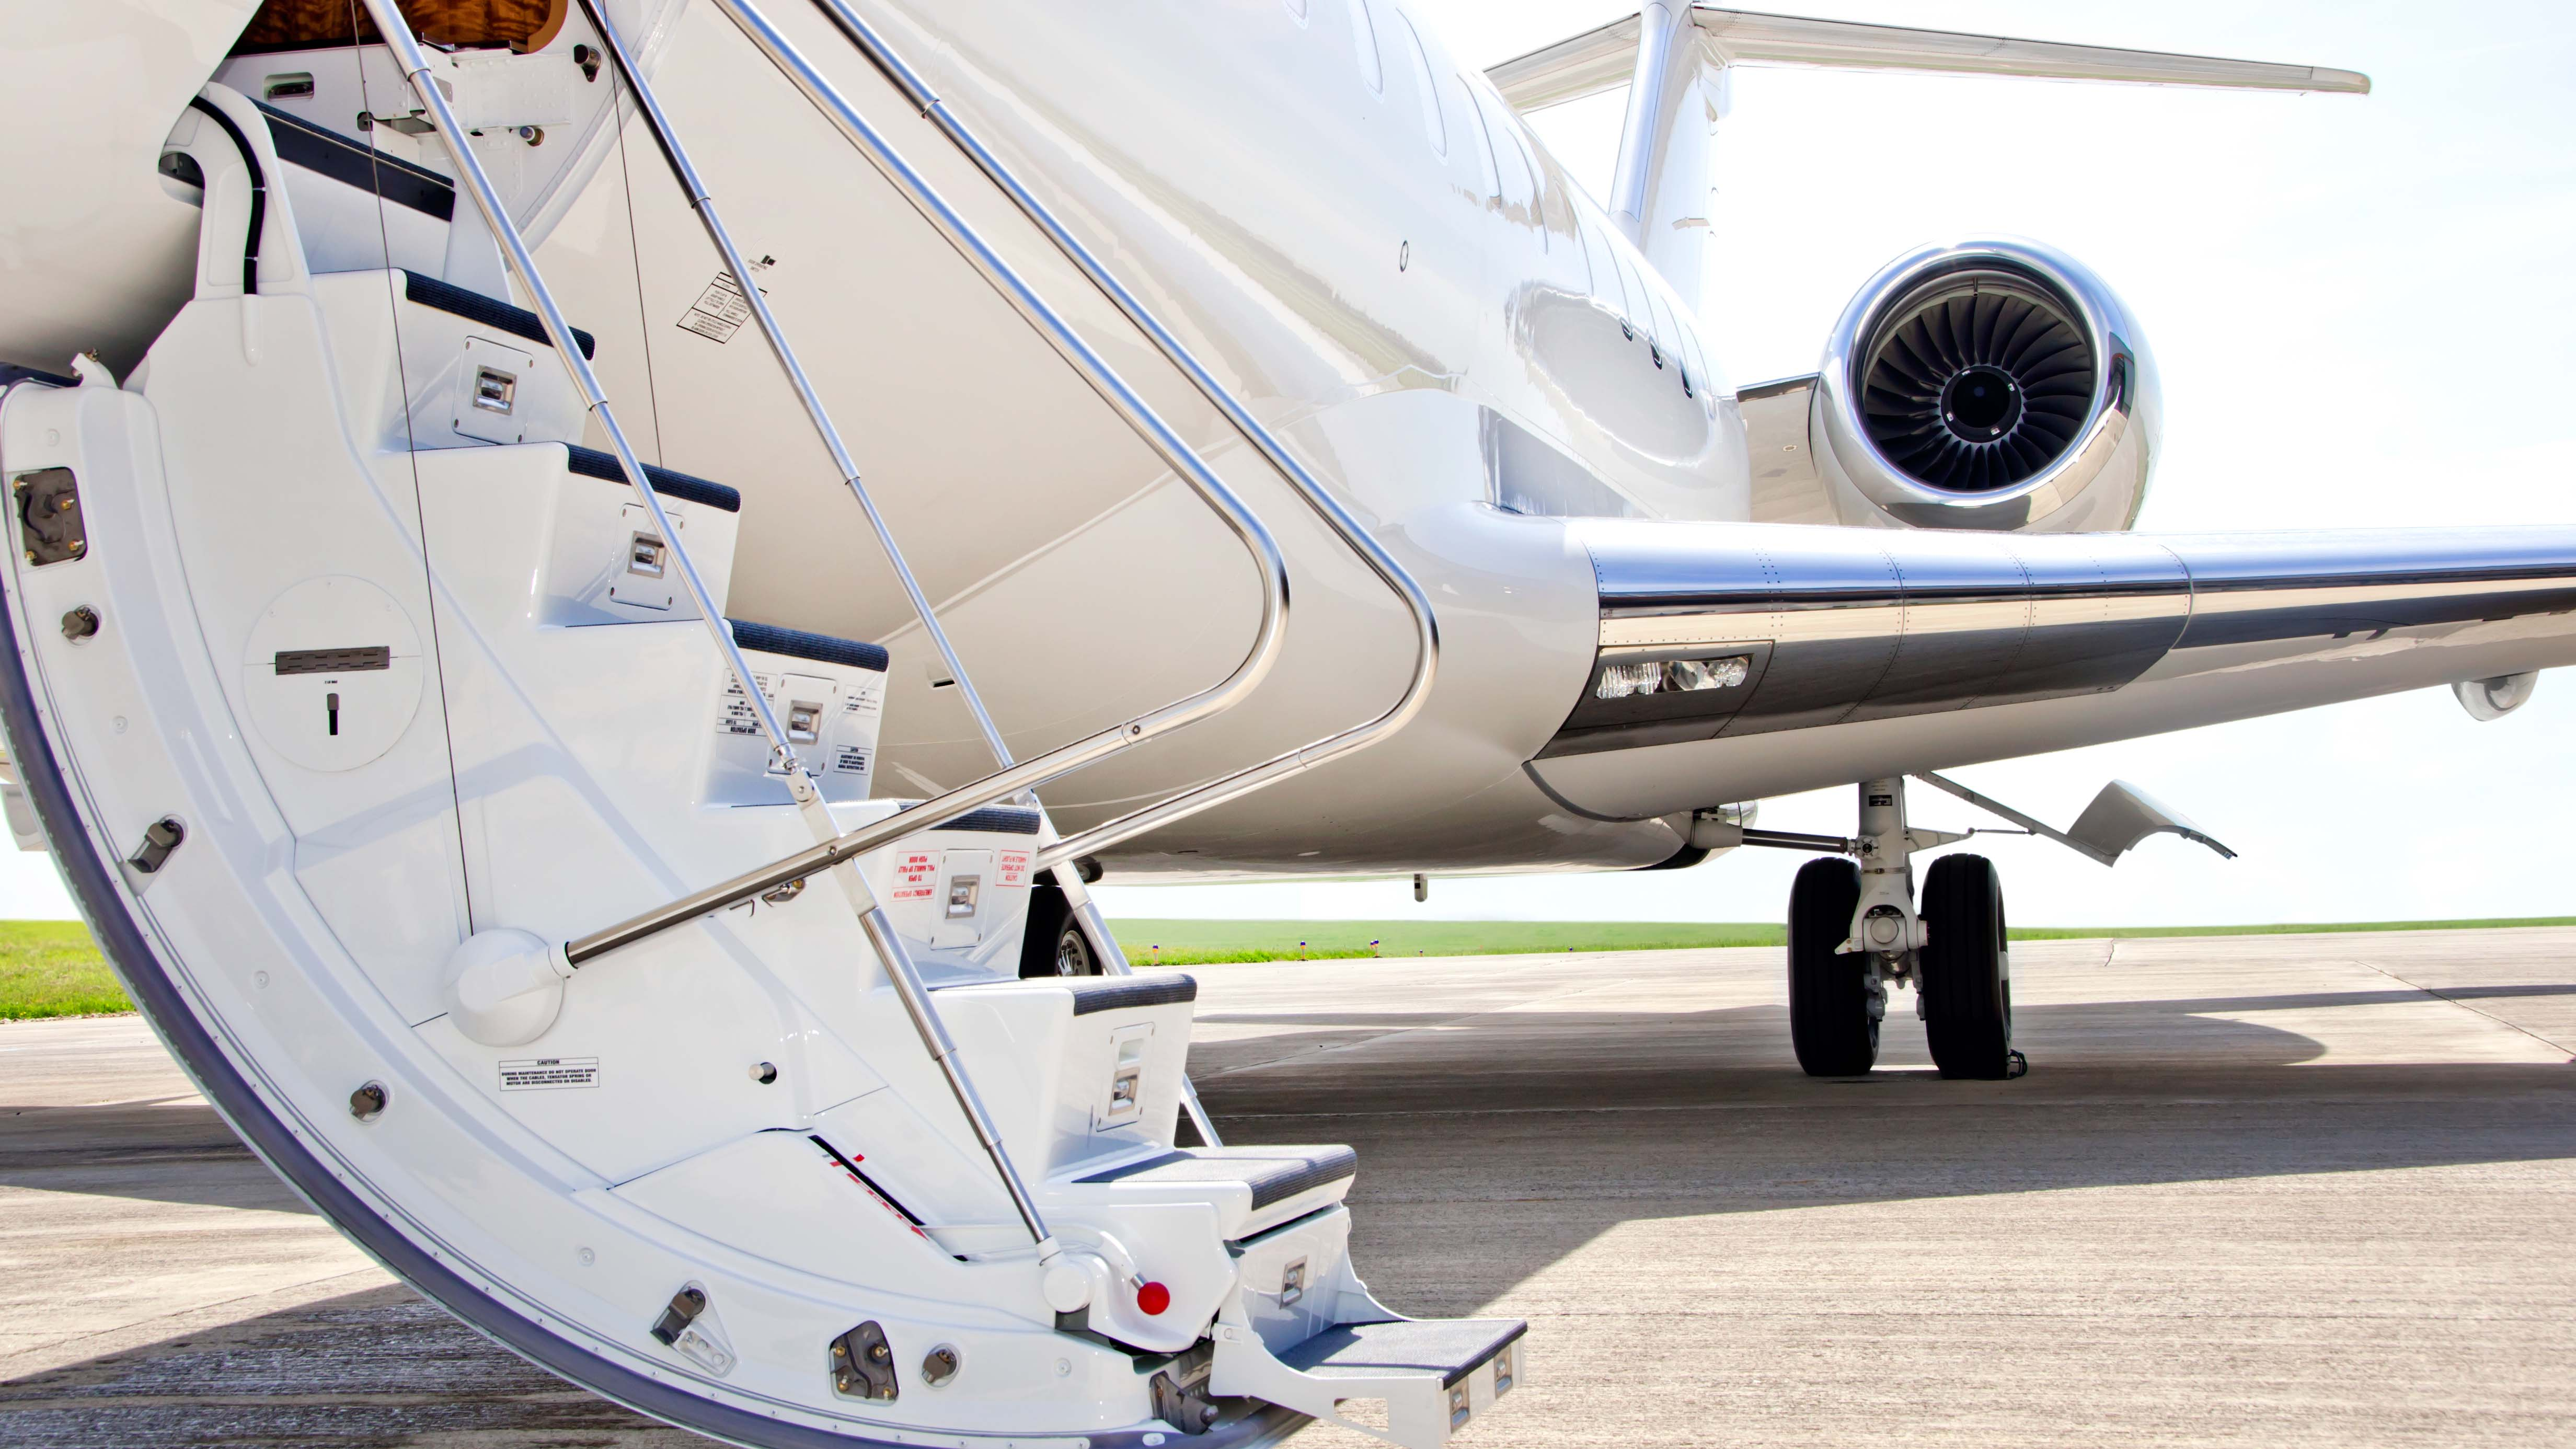 private aviation charter jet Bombardier yacht